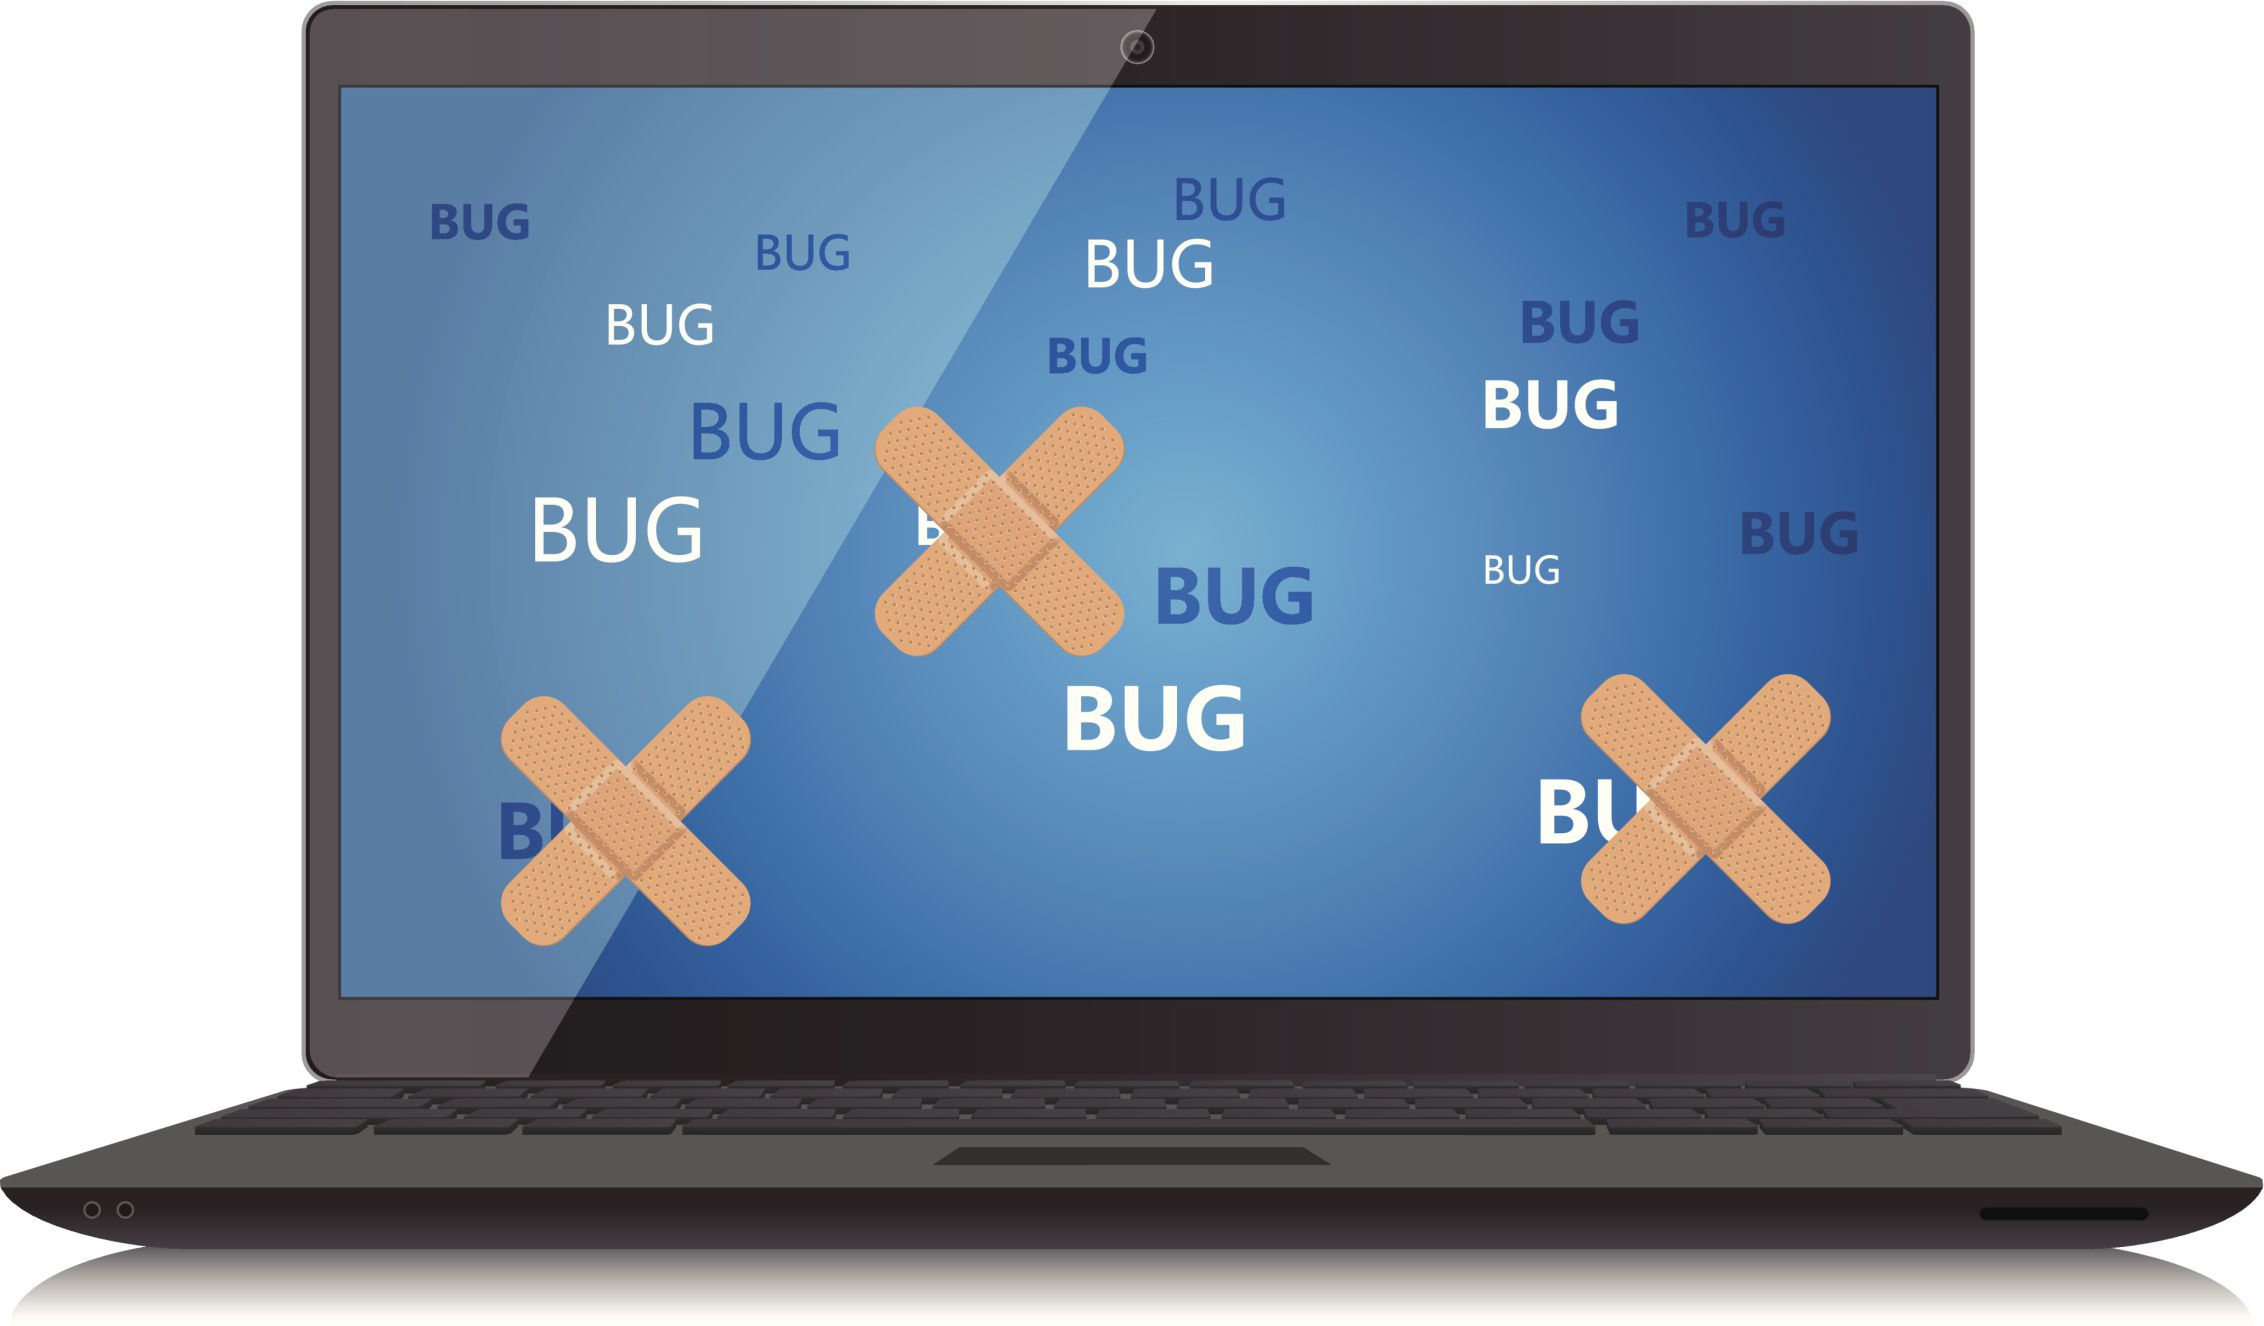 Image of a laptop with bugs, some of which have bandages on them